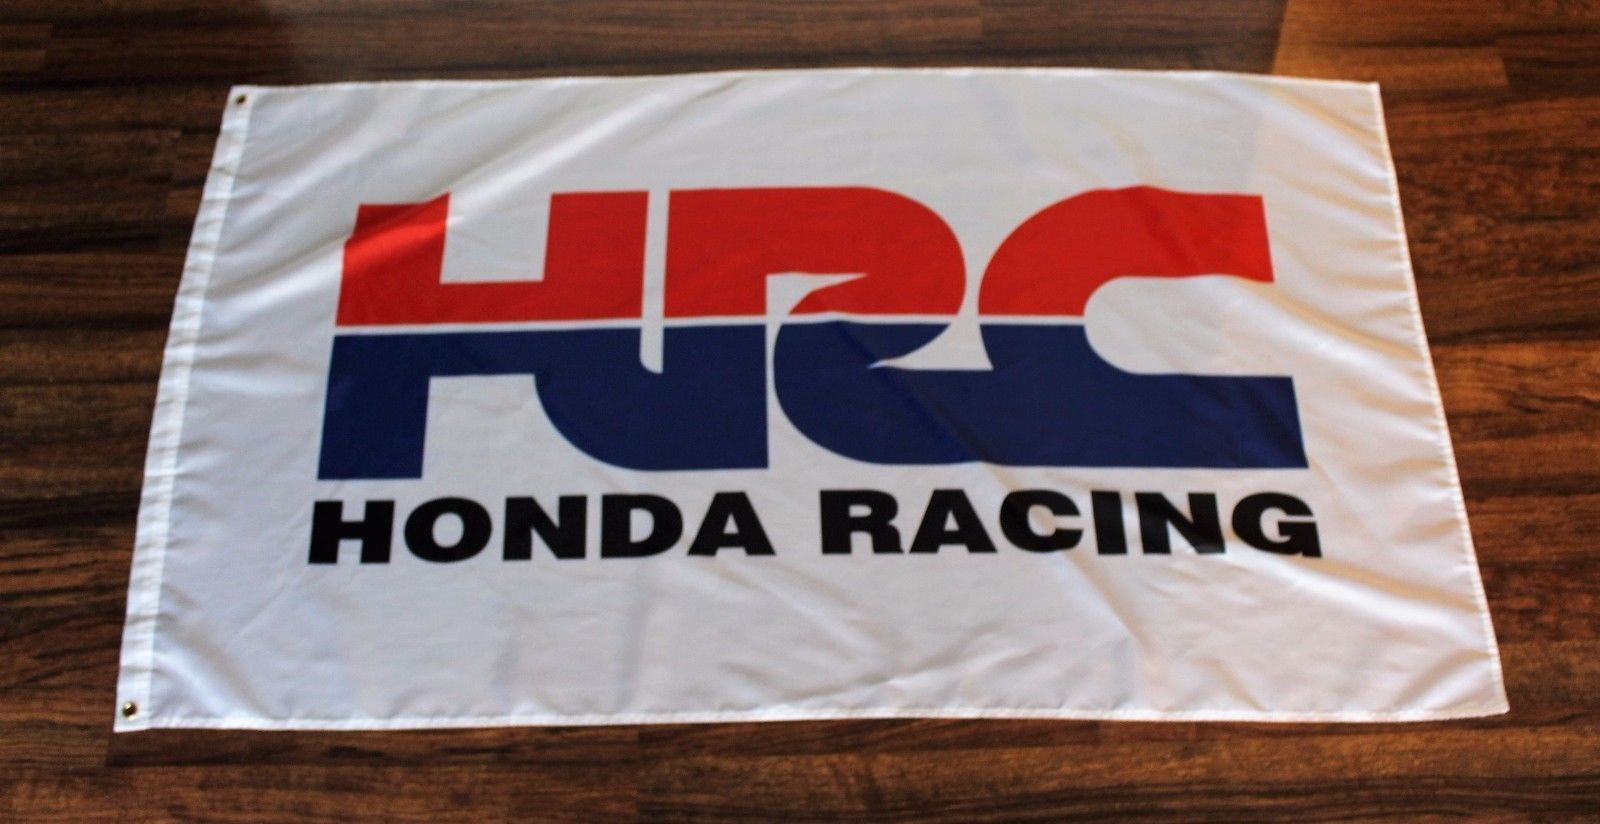 Flags 43533 Honda Hrc Racing White Flag 3 X 5 Cars Auto Banner Sign Garage Hpd Hrc New Buy It Now Only 11 96 On Ebay Flag Banners Signs White Flag Flag